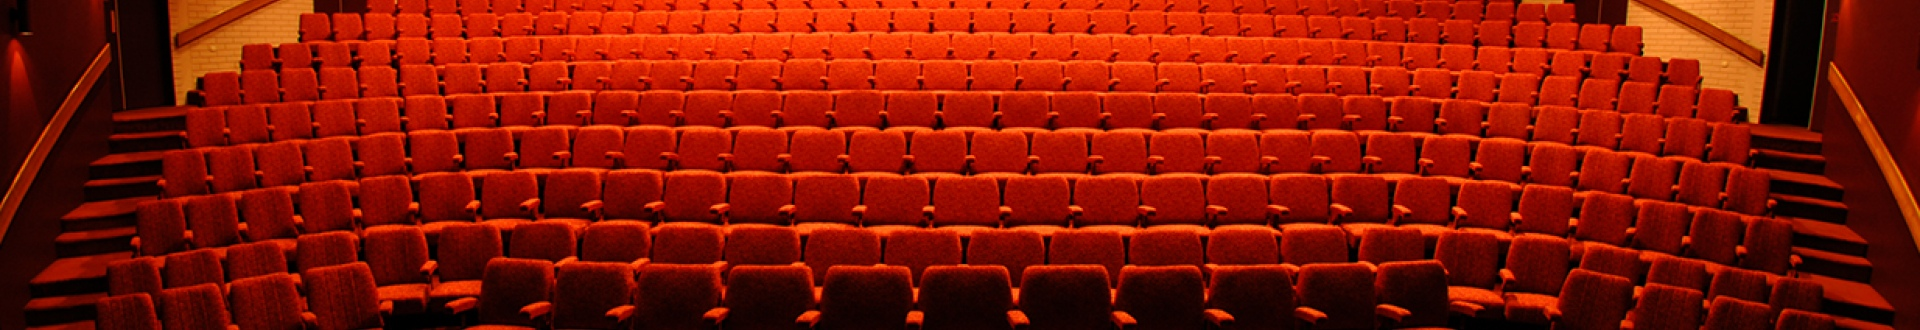 looking at auditorium from stage full of red seats